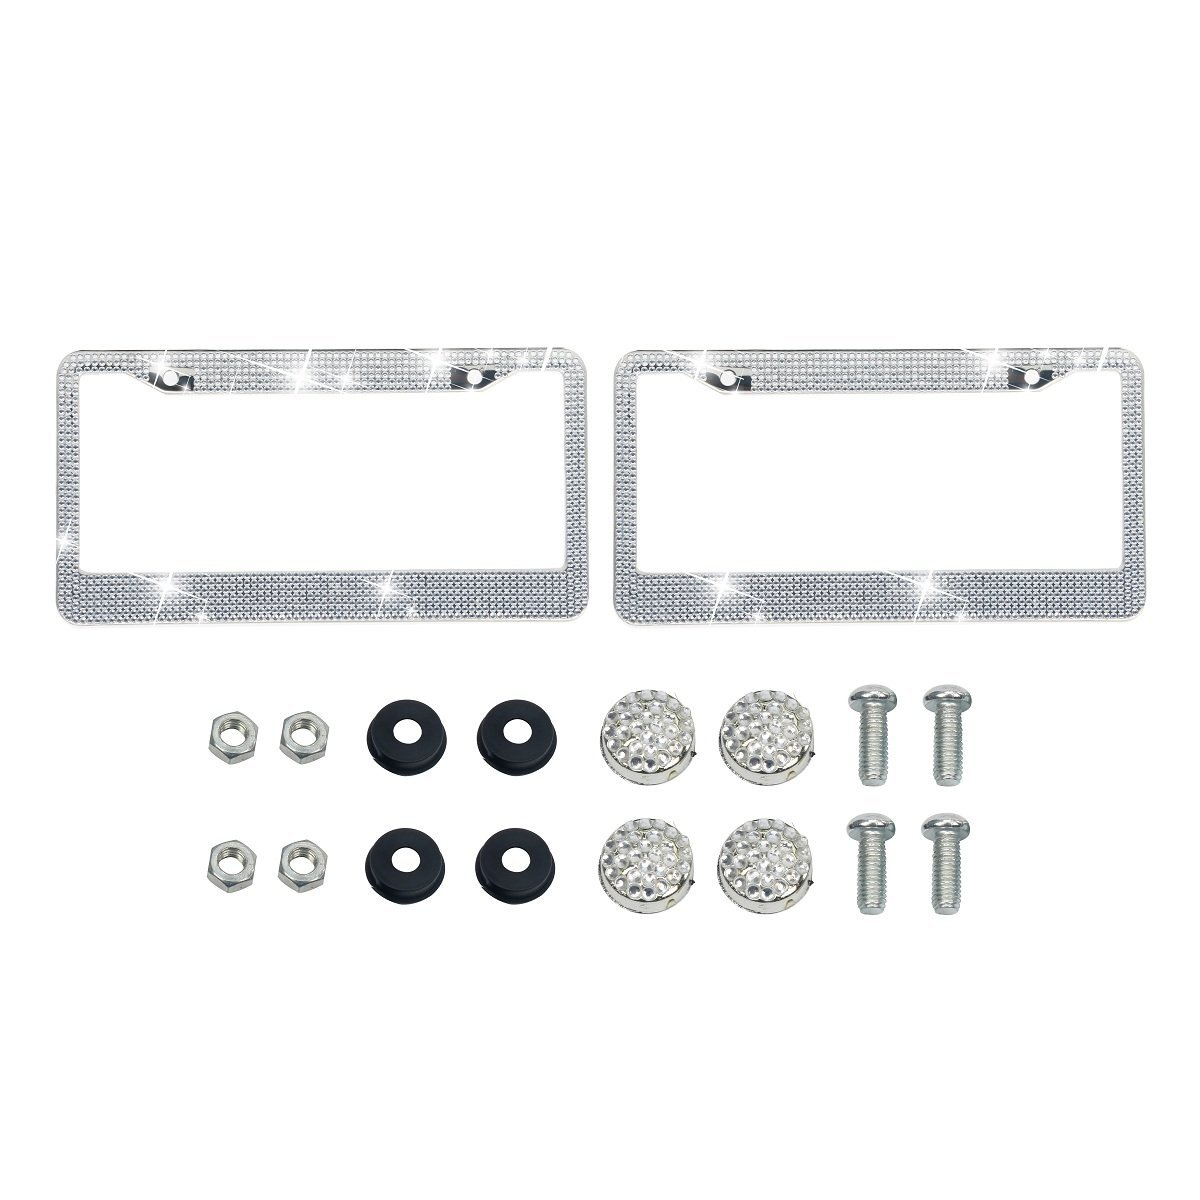 Luxury Pure Handcrafted Bling Rhinestone Premium Stainless Steel License Plate Frame for Cars with Anti-Theft Screws Caps Set Bling License Plate Frames 2 PACK